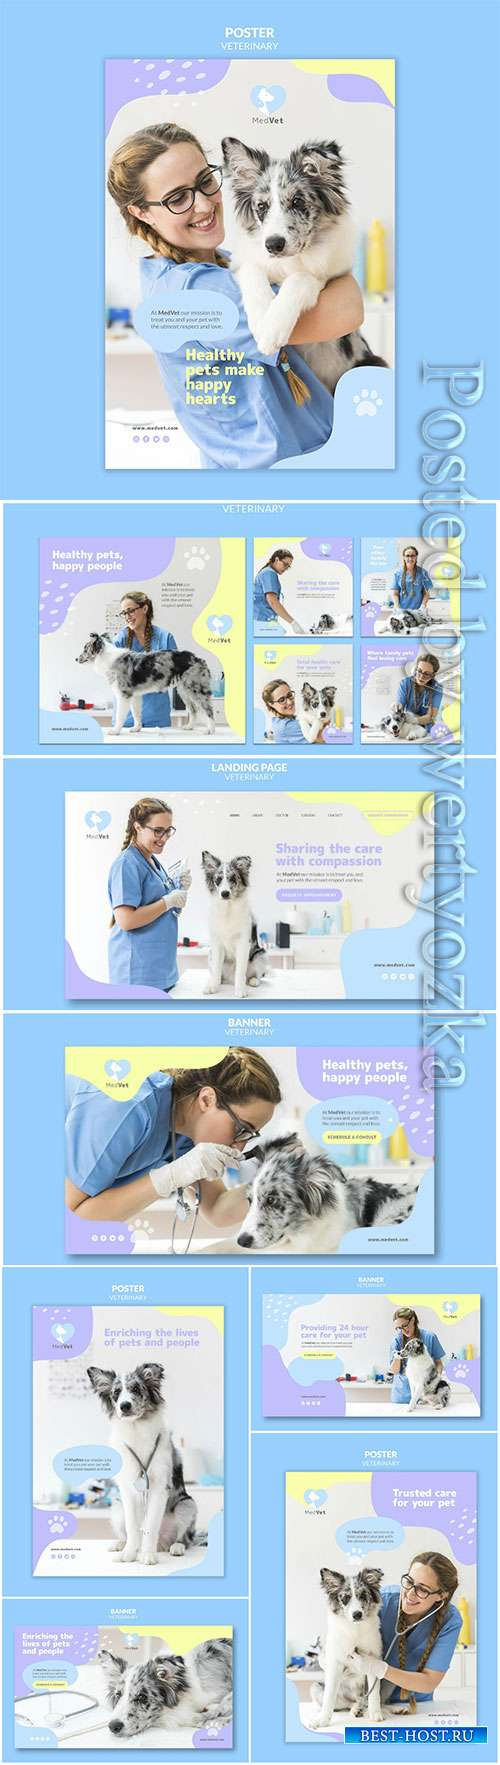 Veterinary clinic psd flyer template